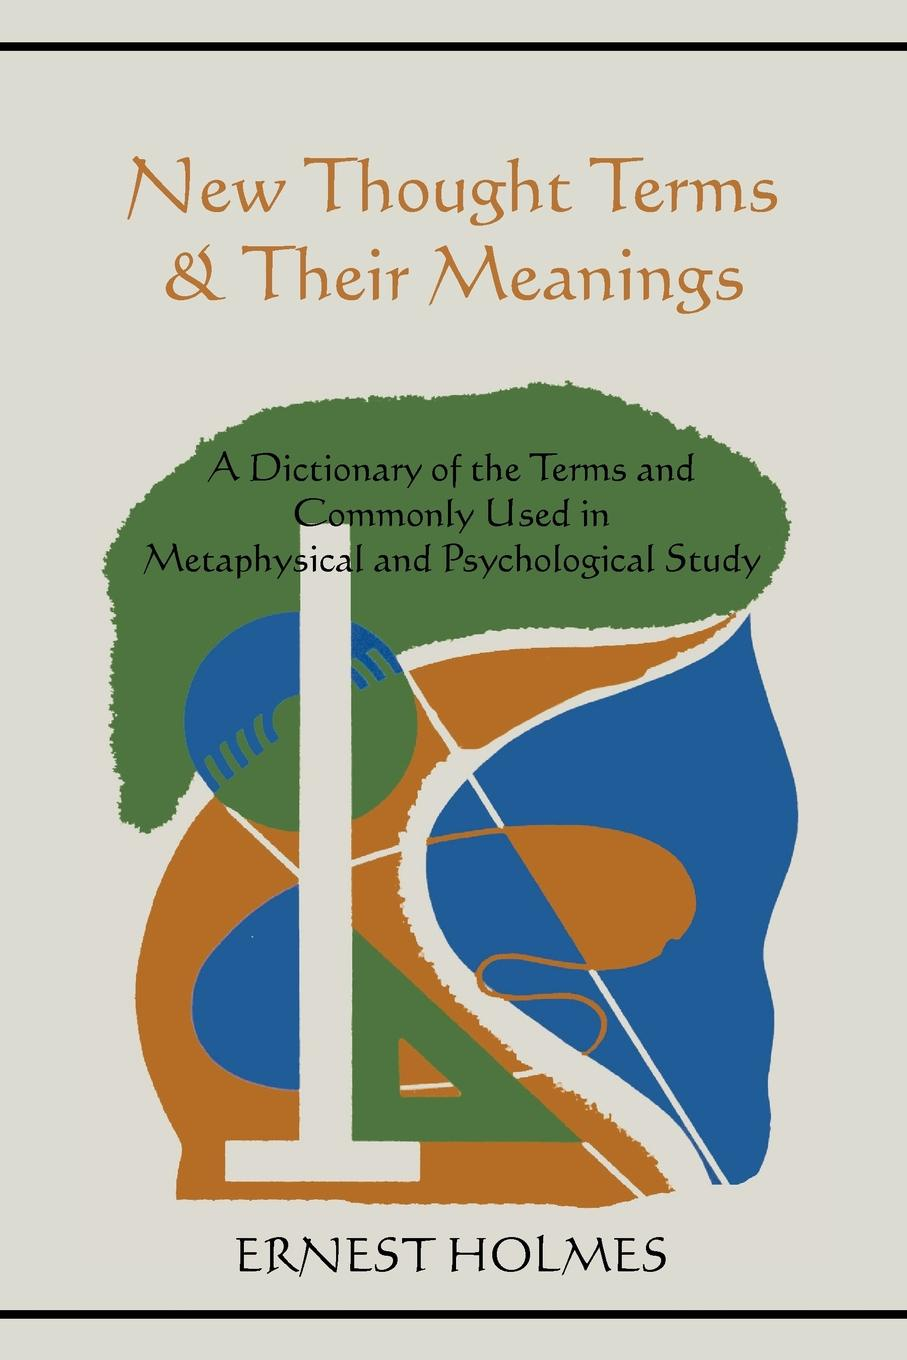 Ernest Holmes New Thought Terms & Their Meanings. A Dictionary of the Terms and Commonly Used in Metaphysical and Psychological Study